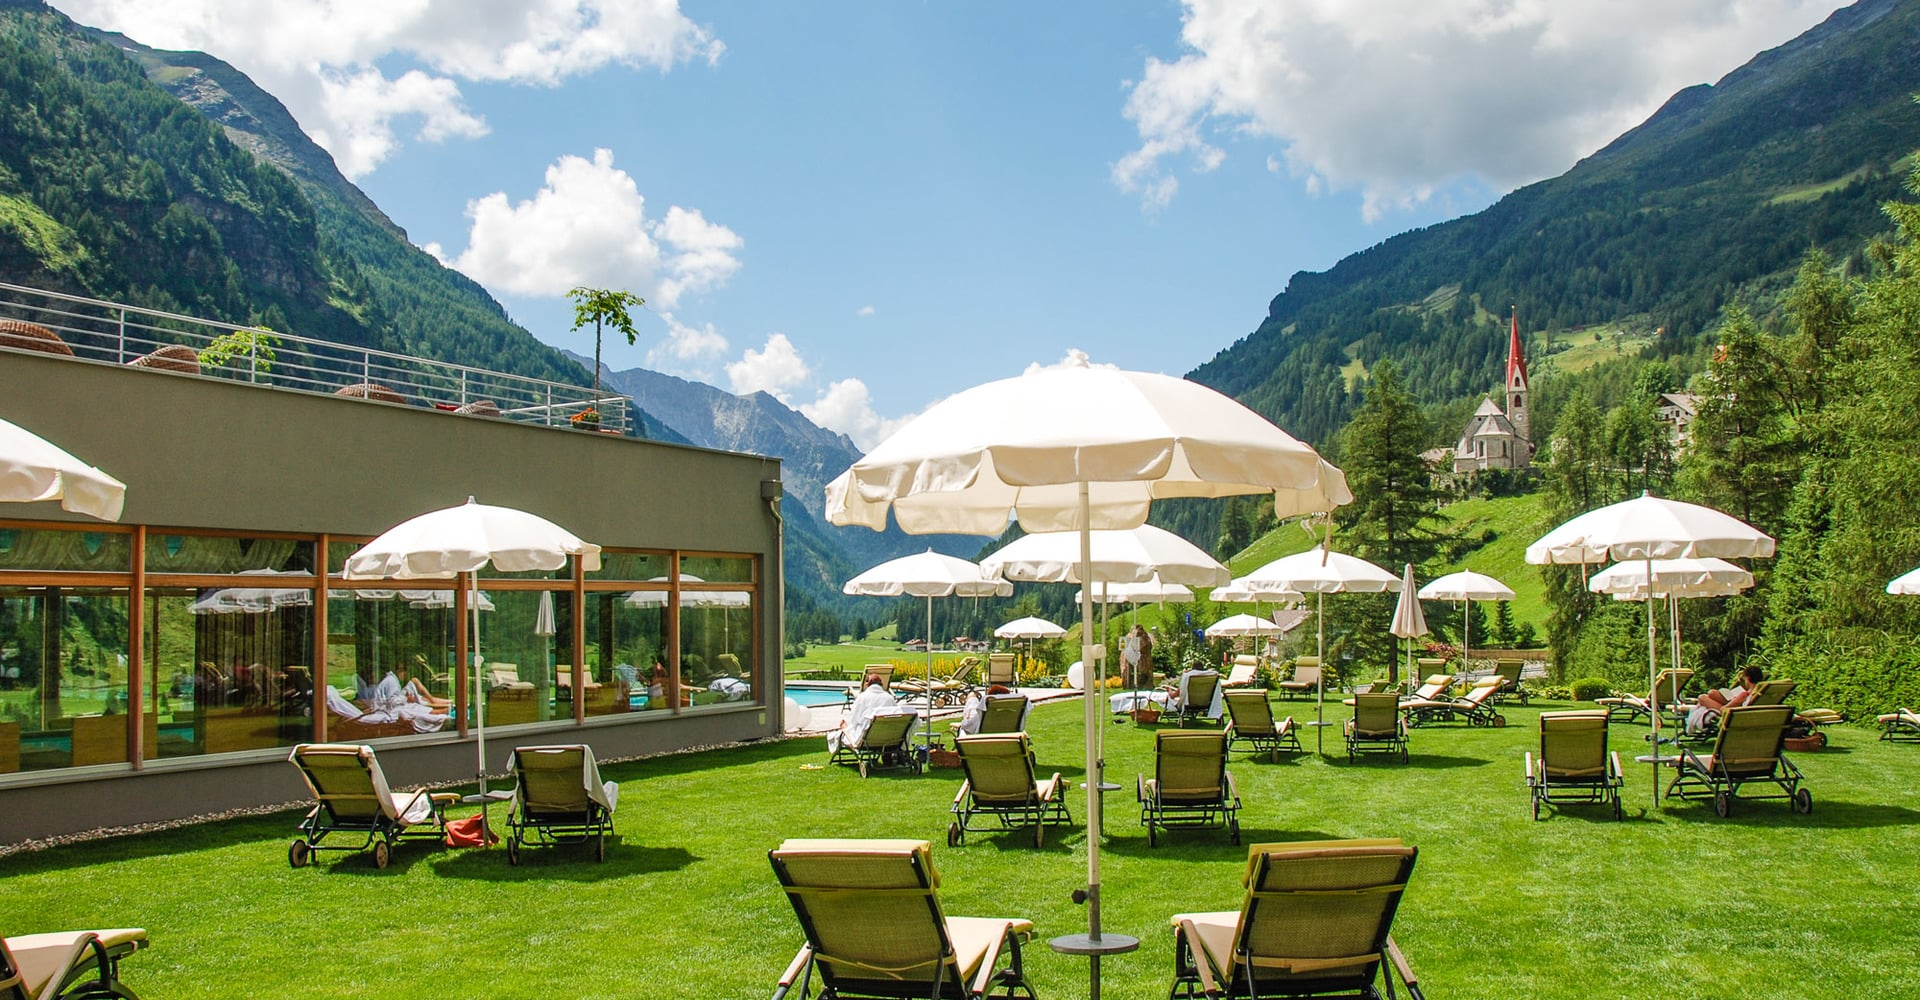 Nature Hotel South Tyrol – Retreatment Oasis Amid Mountains